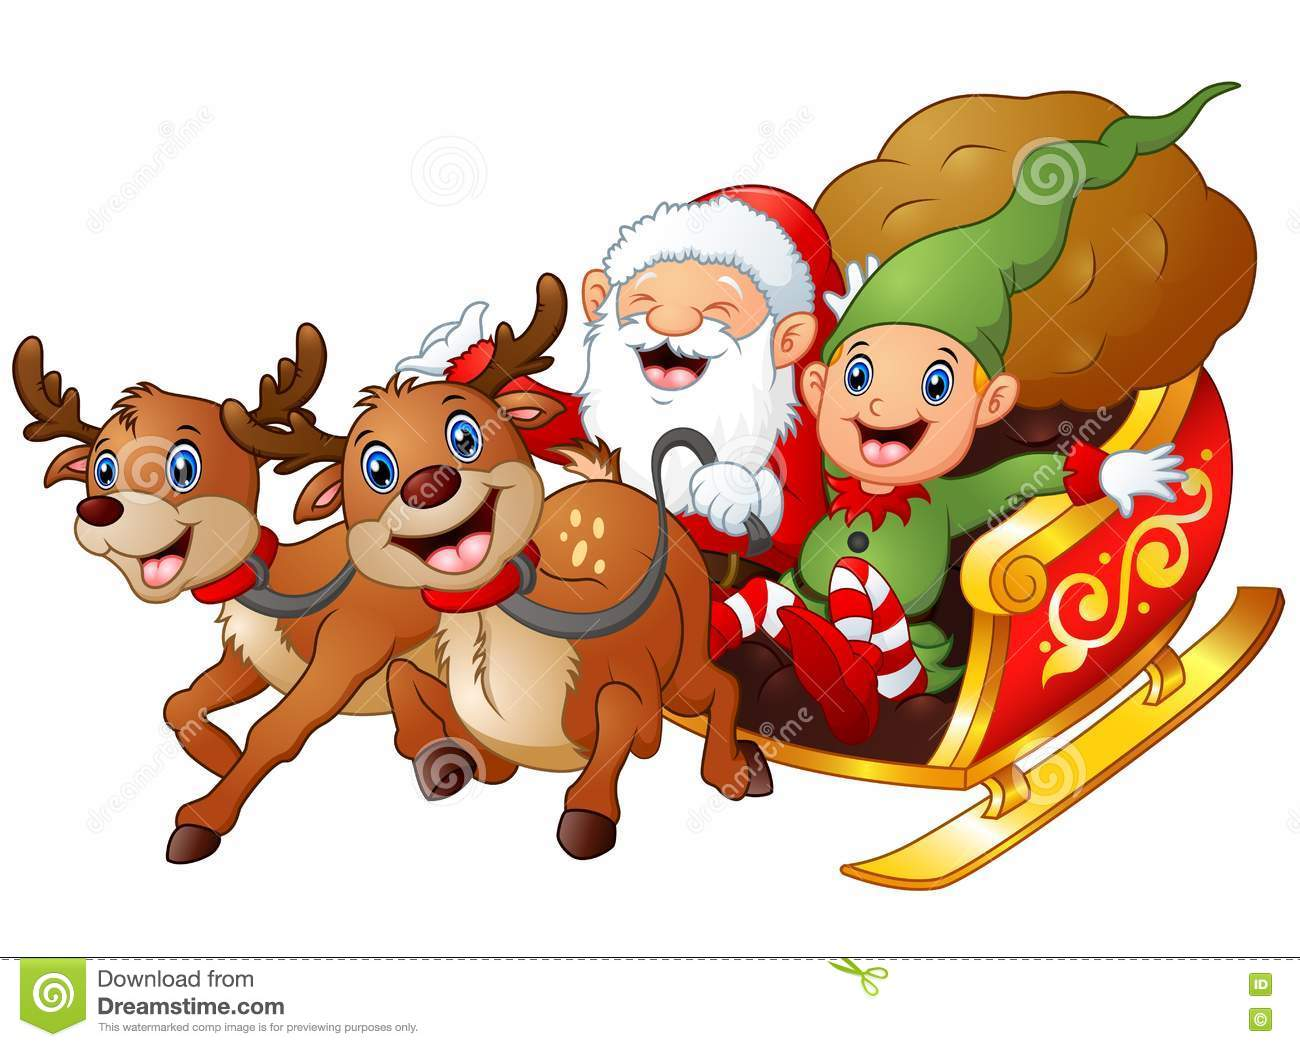 Santa and elf cartoon a riding in sled sleigh and gift bag with two reindeer